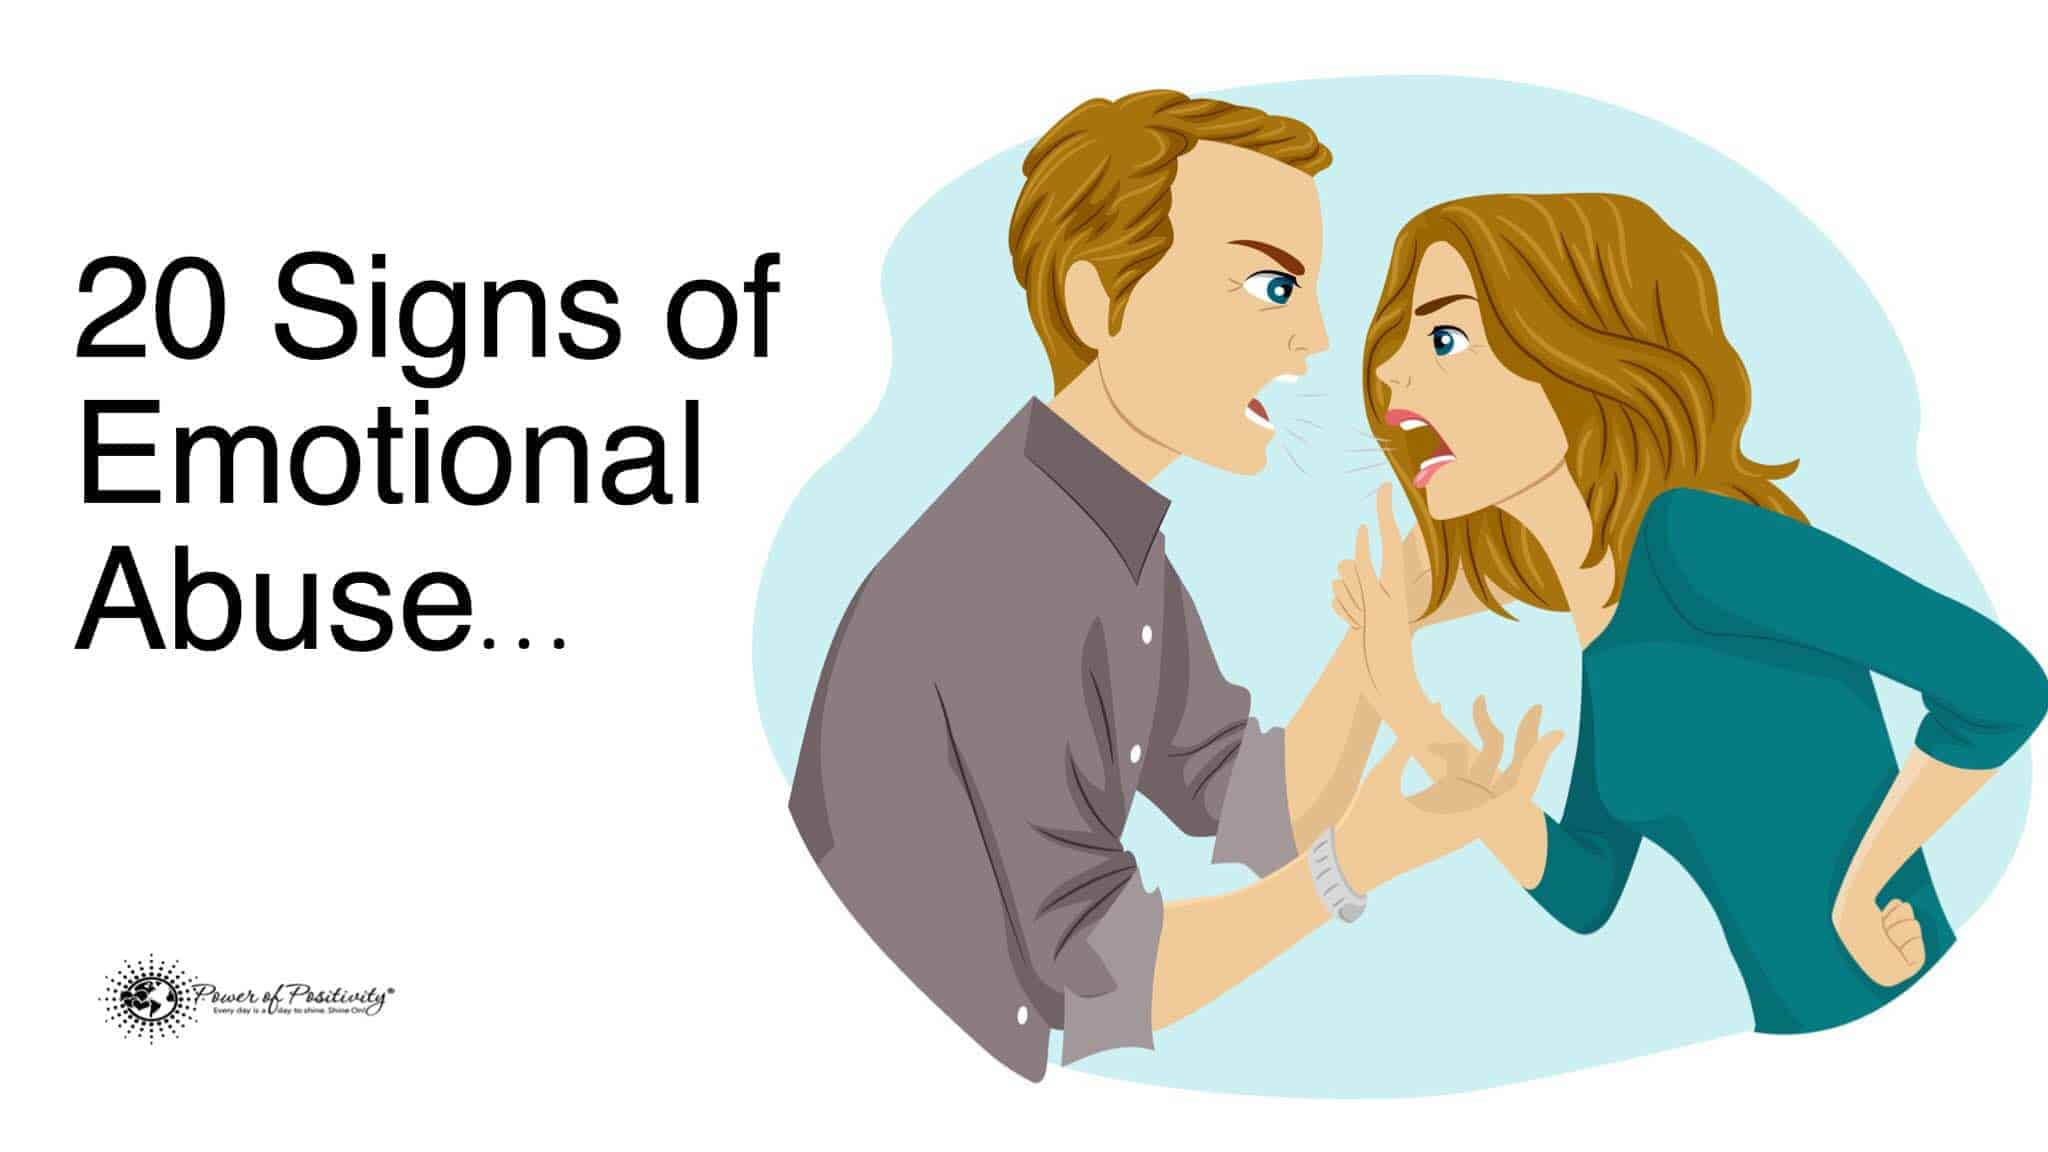 Signs of emotionally abusive relationships